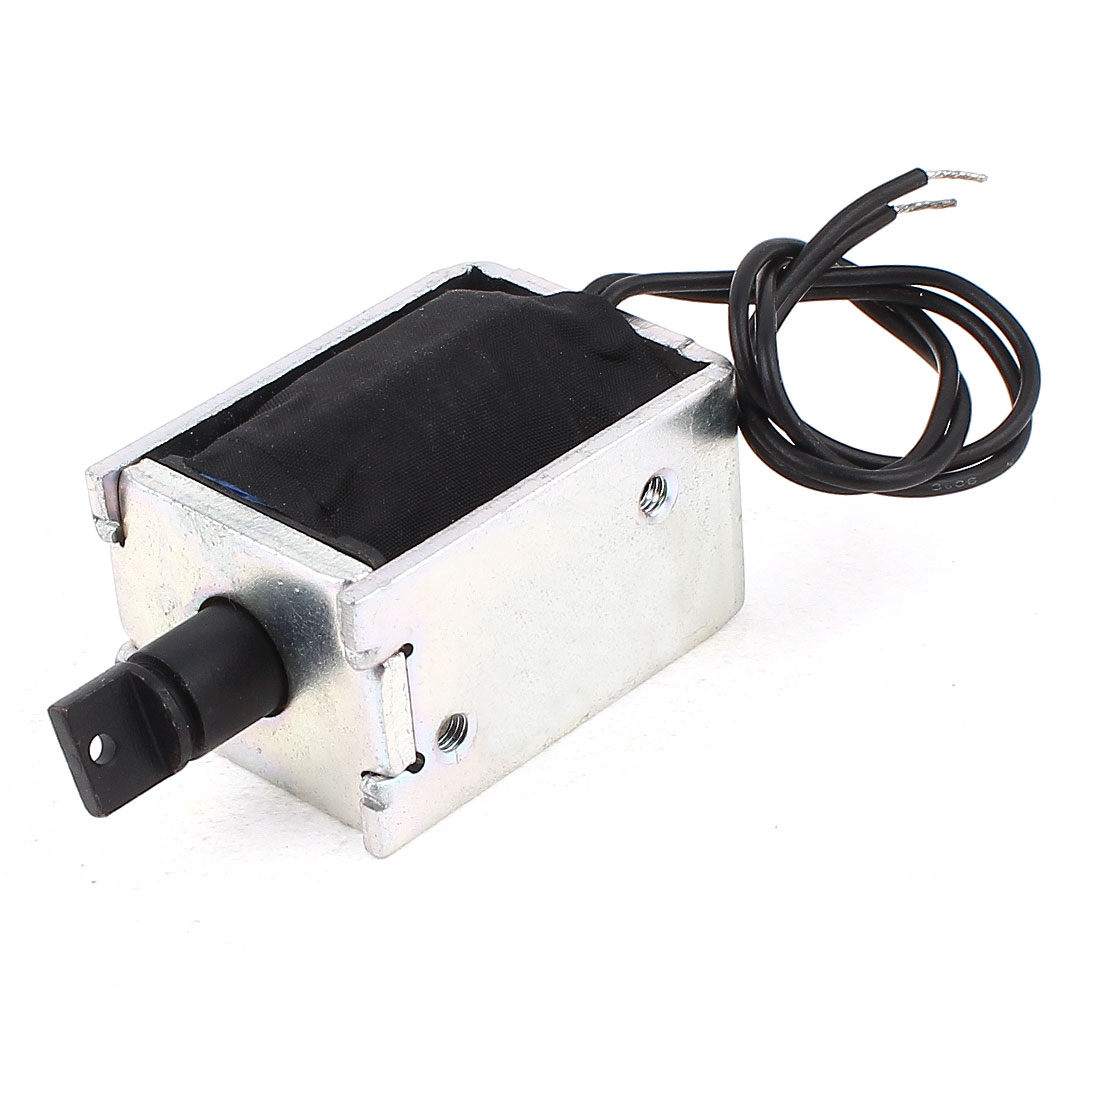 DC12V 0.6A 2-Wire Connect Open Frame Pull Type Electric Holding Magnet Lifting Solenoid Electromagnet 1mm 500g 11mm 100g